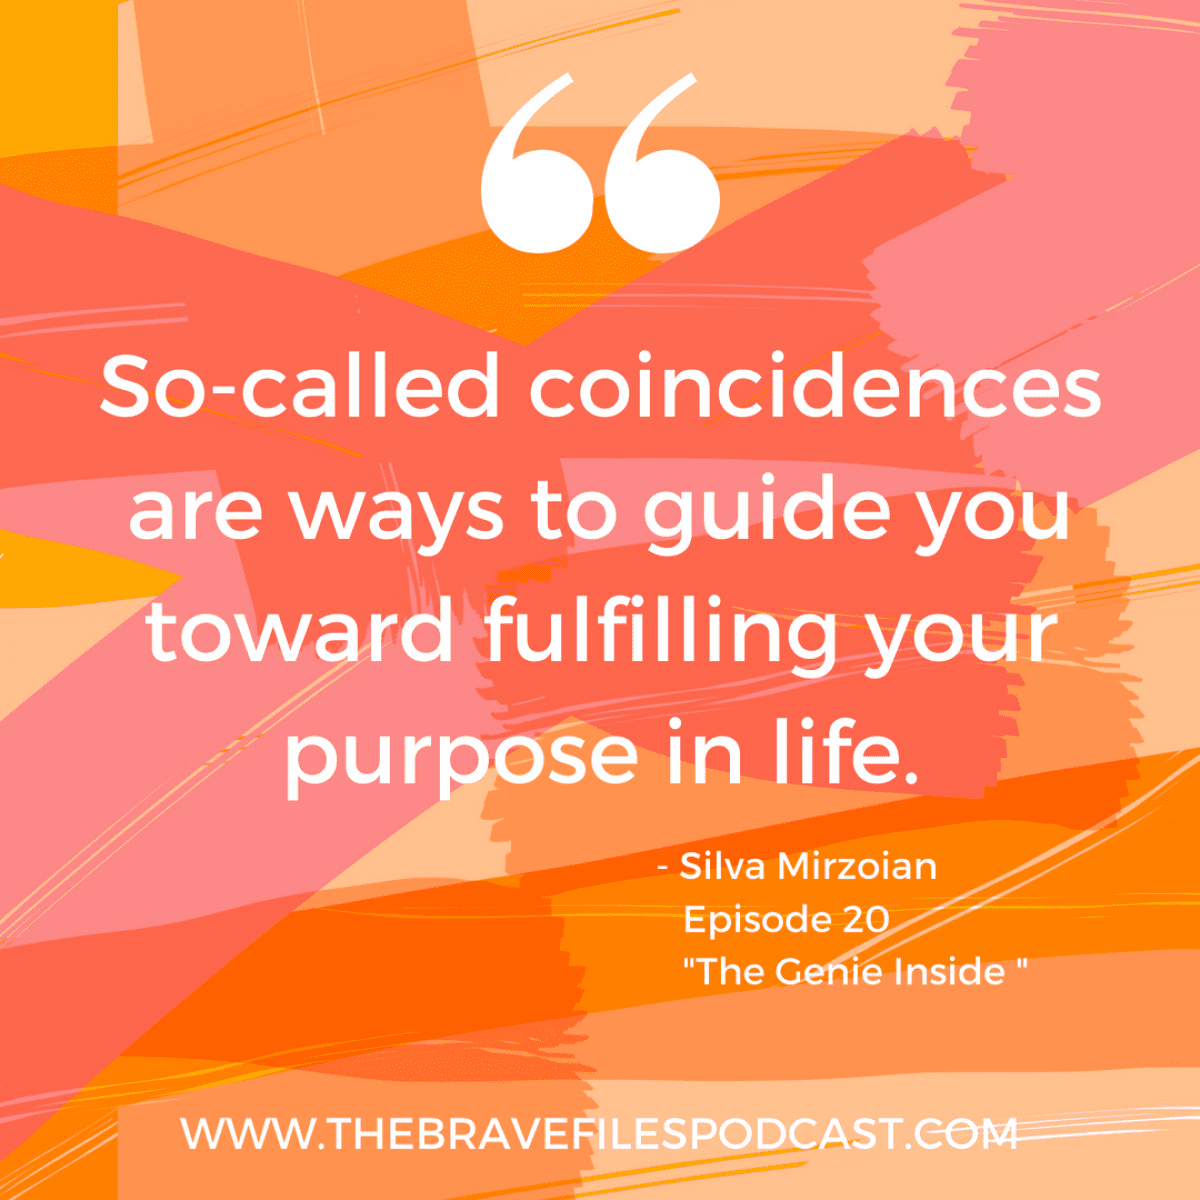 Transform, Silva Mirzoian joins The Brave Files Podcast to talk about fulfilling your life purpose.